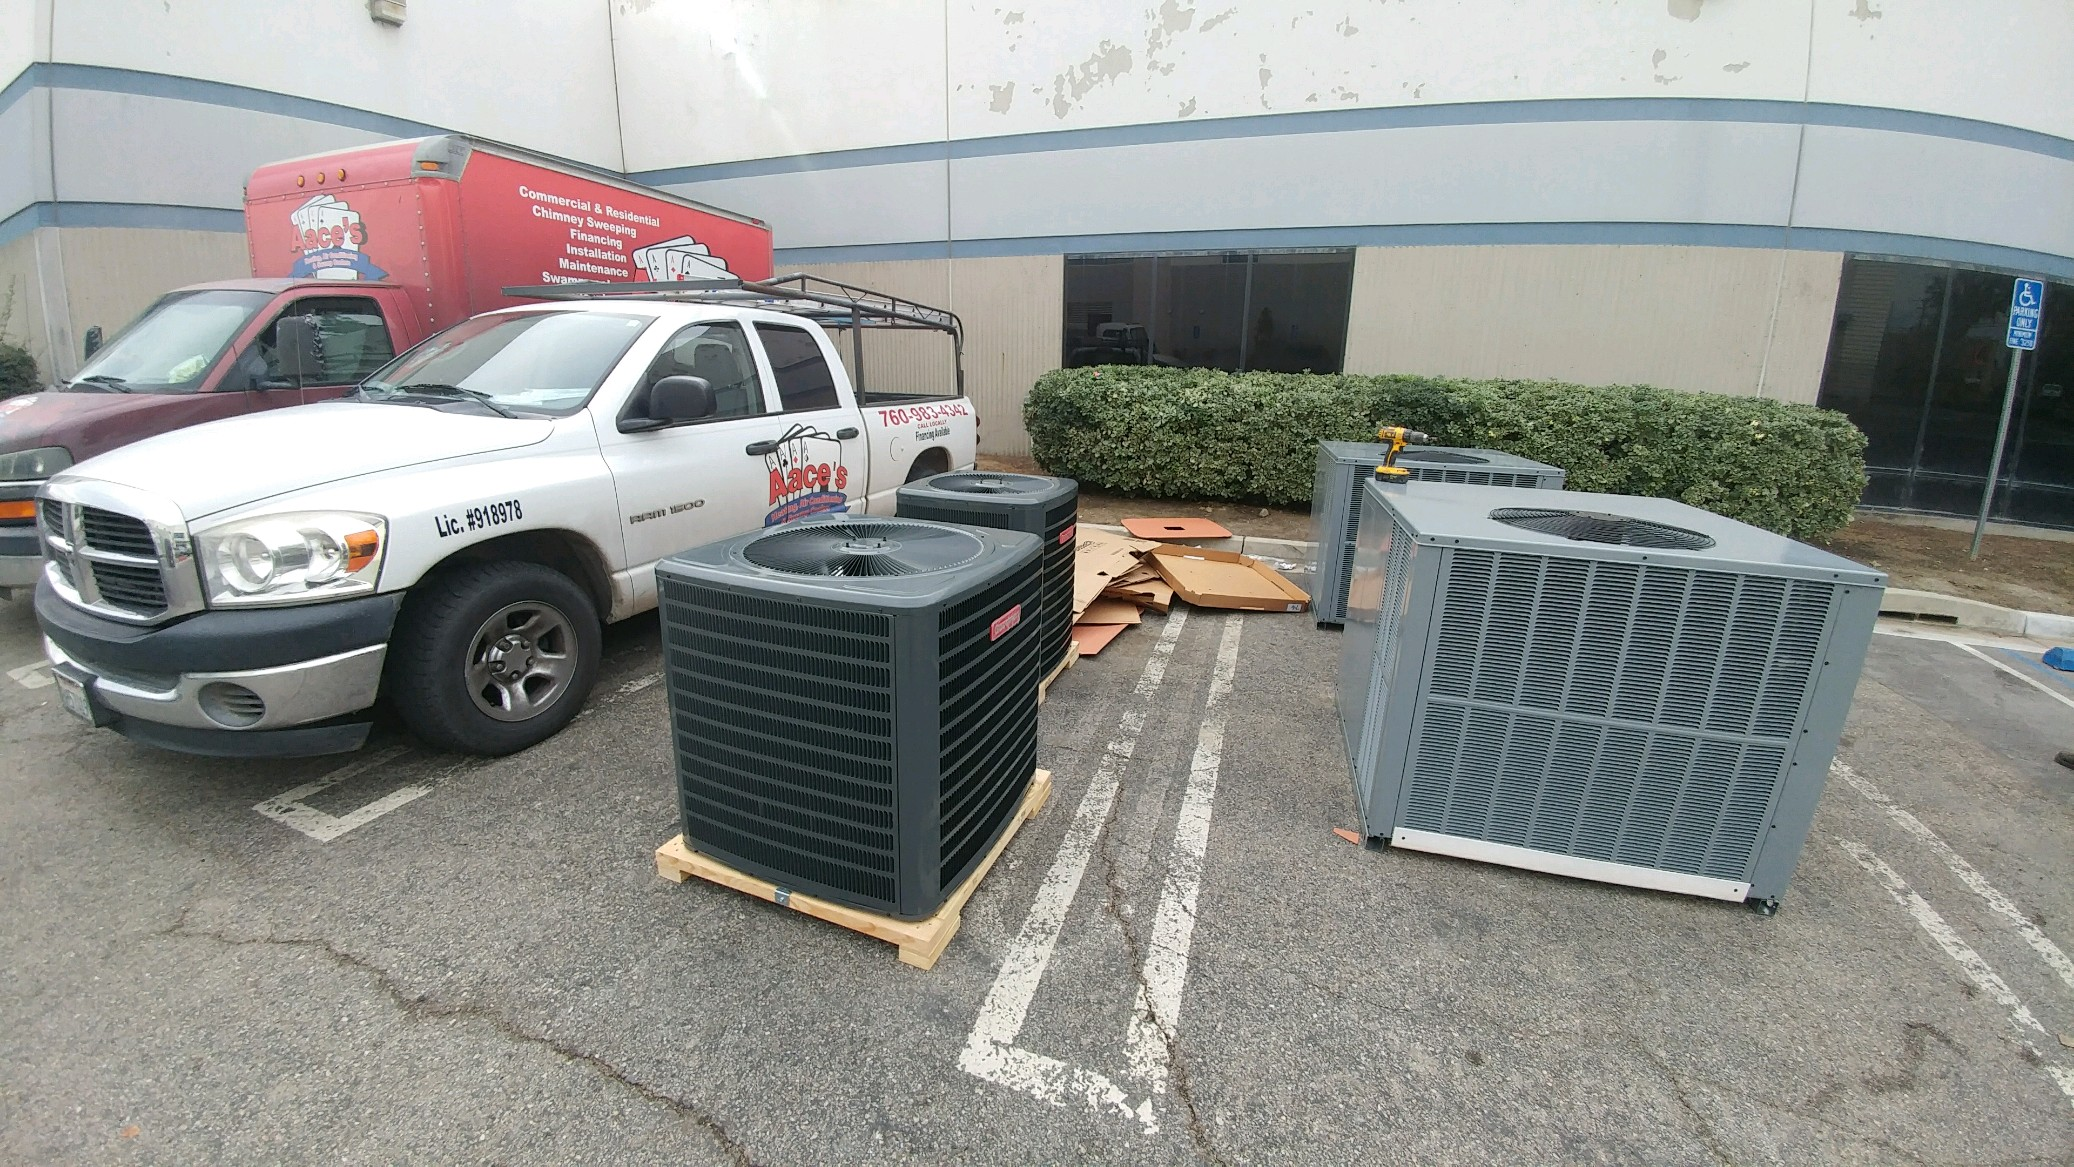 Aace's Heating, Air Conditioning image 29